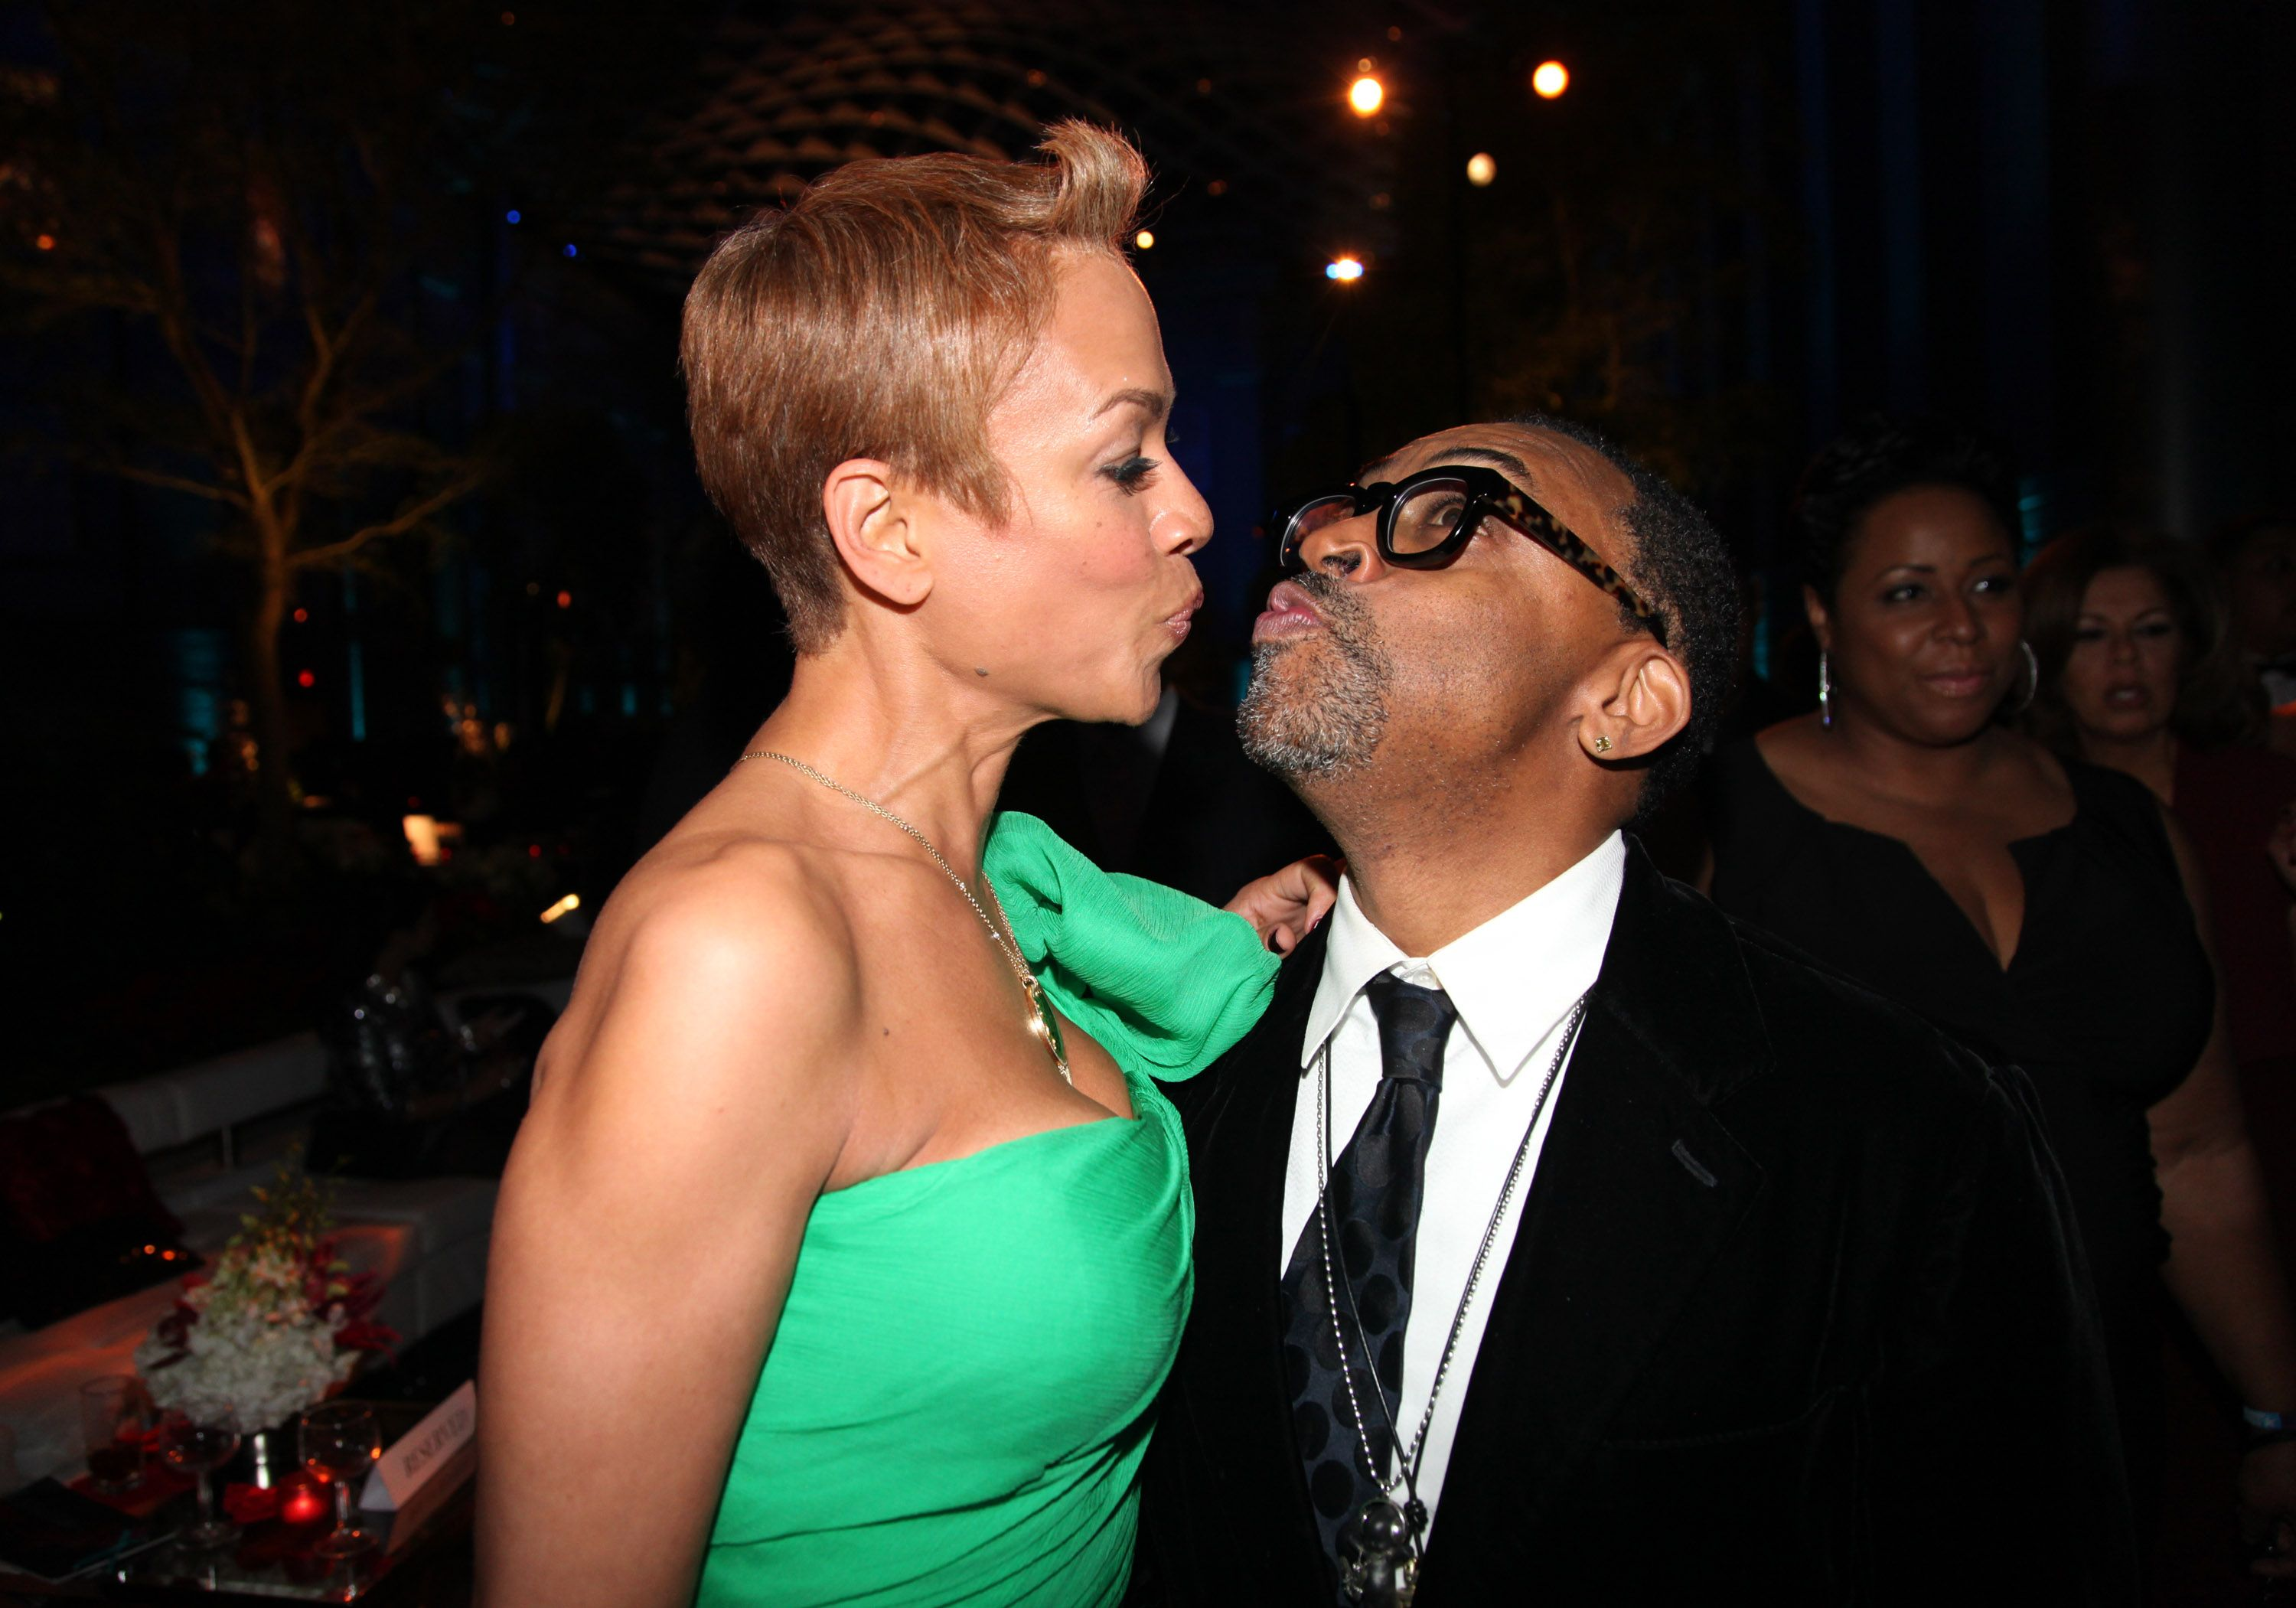 Tonya Lewis Lee and Spike Lee at the after party for BET Honors 2012 in Washington, DC   Source: Getty Images